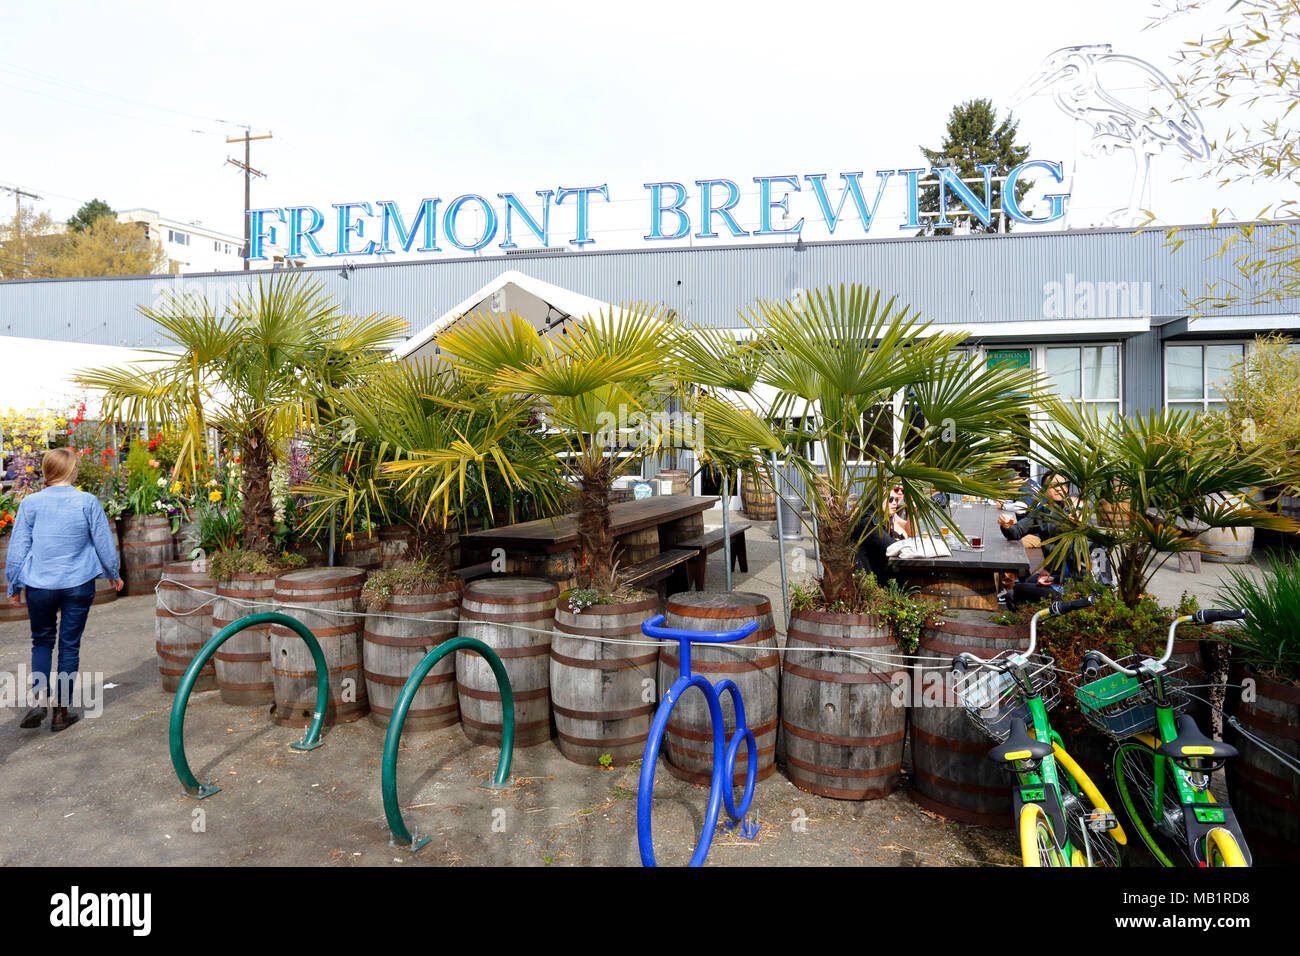 Fremont Brewing 1050 N 34th St Seattle Wa Stock Photo 178905252